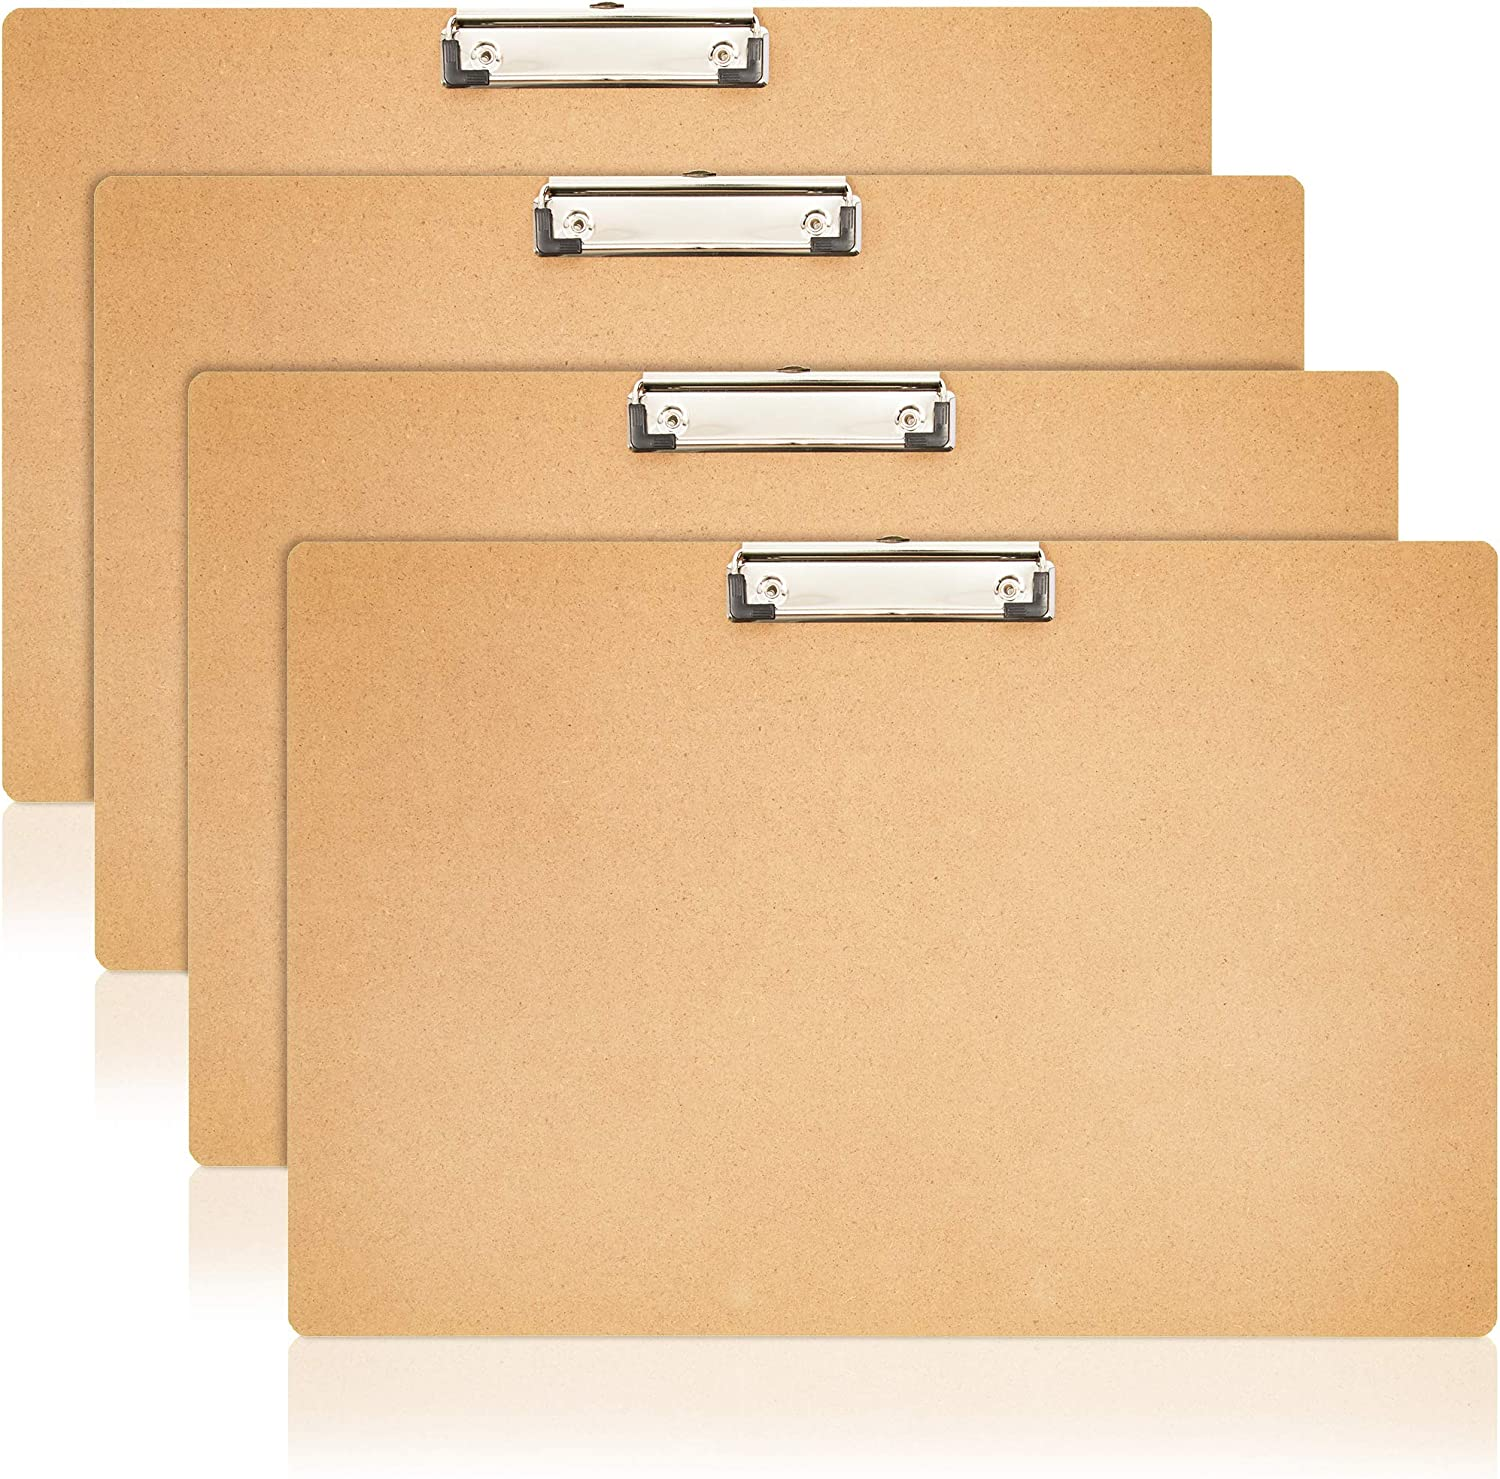 Juvale Horizontal Hardboard Clipboard for Classroom and Office (17.5 x 11.5 in, 4 Pack)